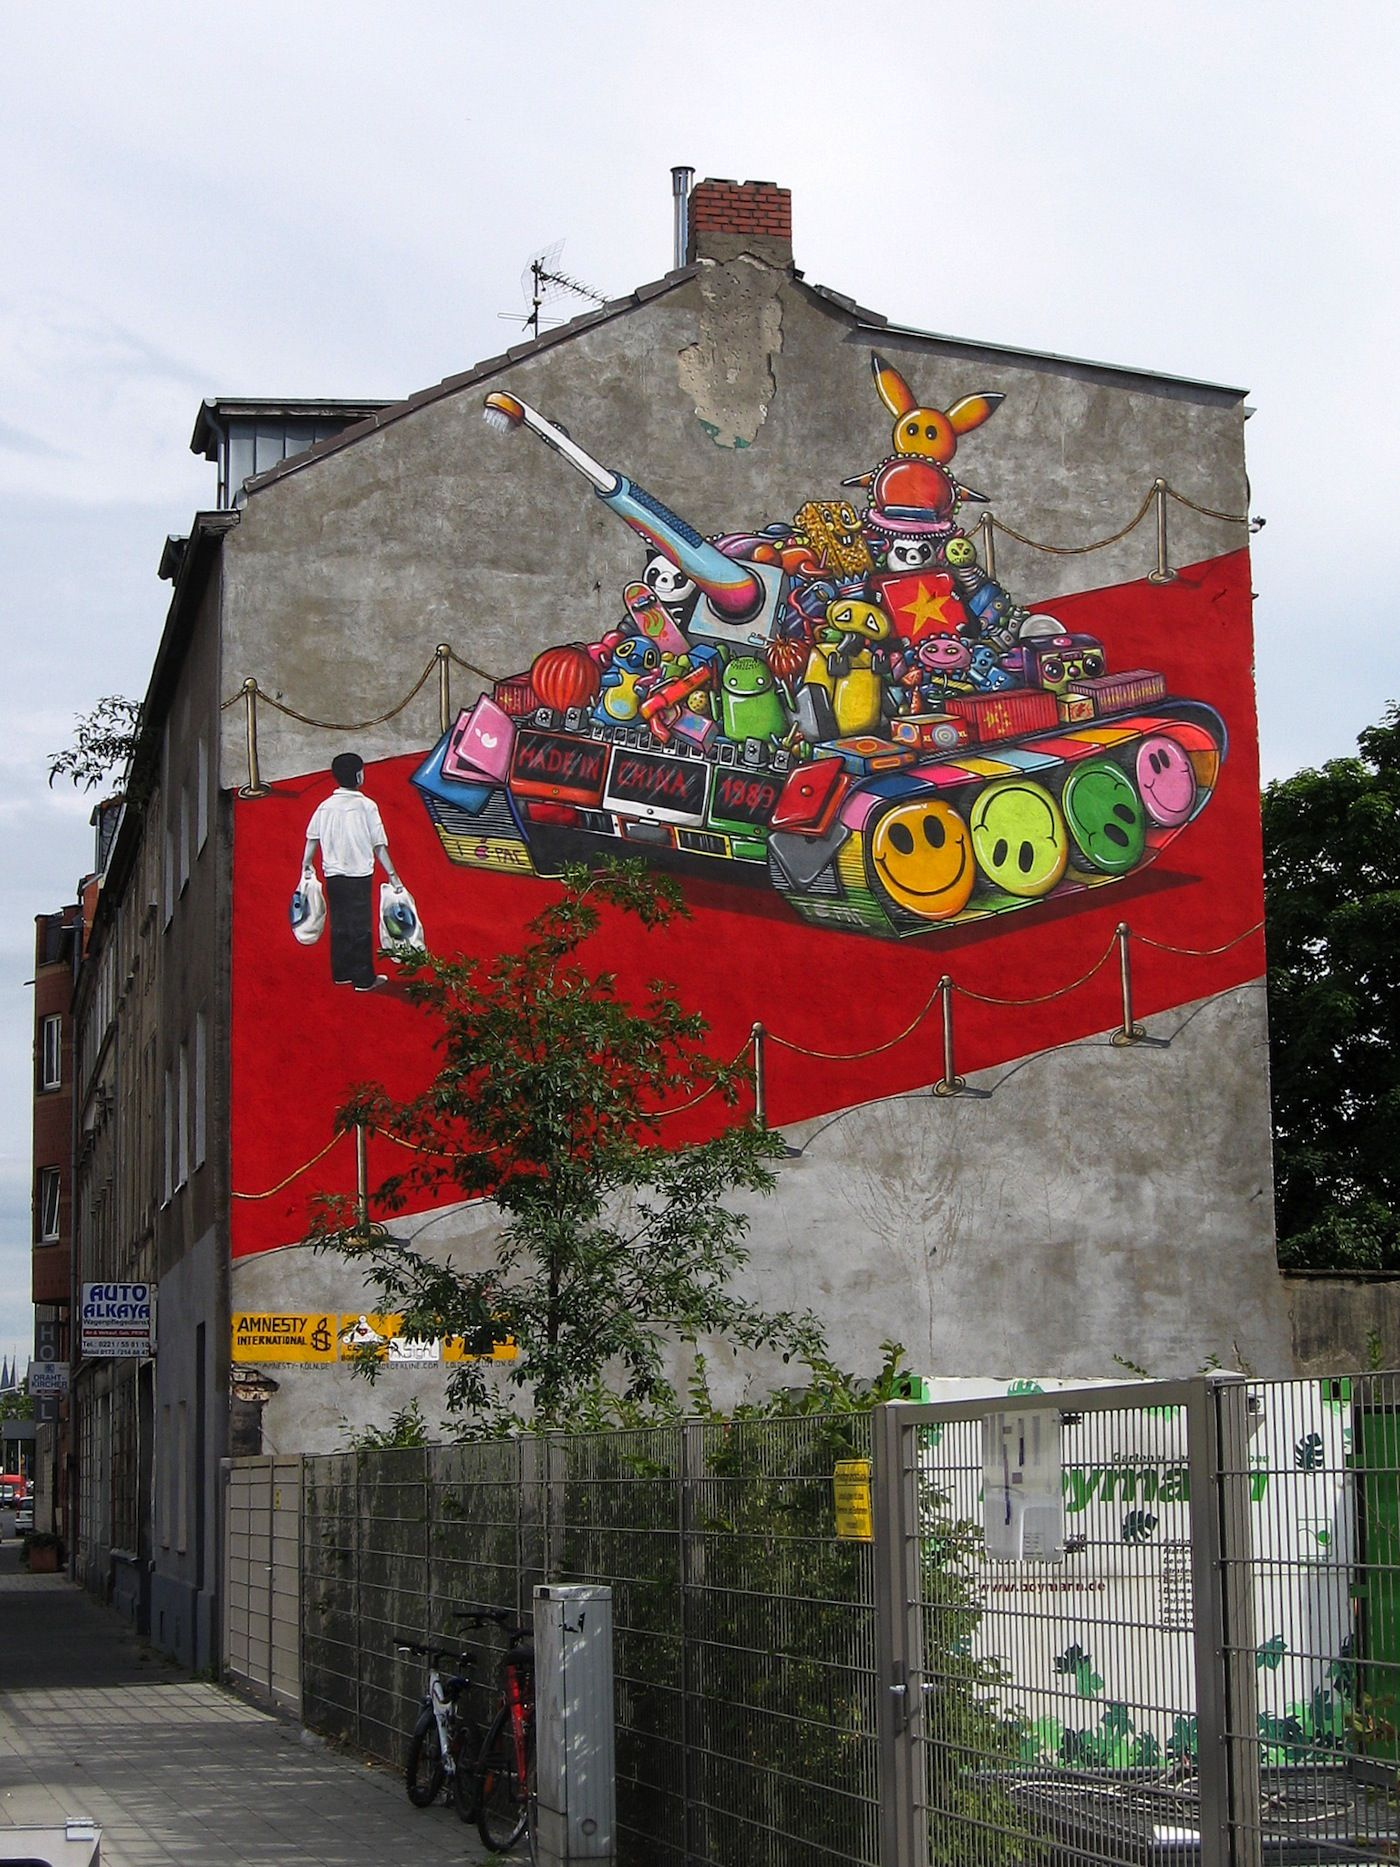 By A Signl From The Captain Borderline Crew In Cologne Germany In Collaboration With Amnesty International Street Art Street Mural Street Art Utopia